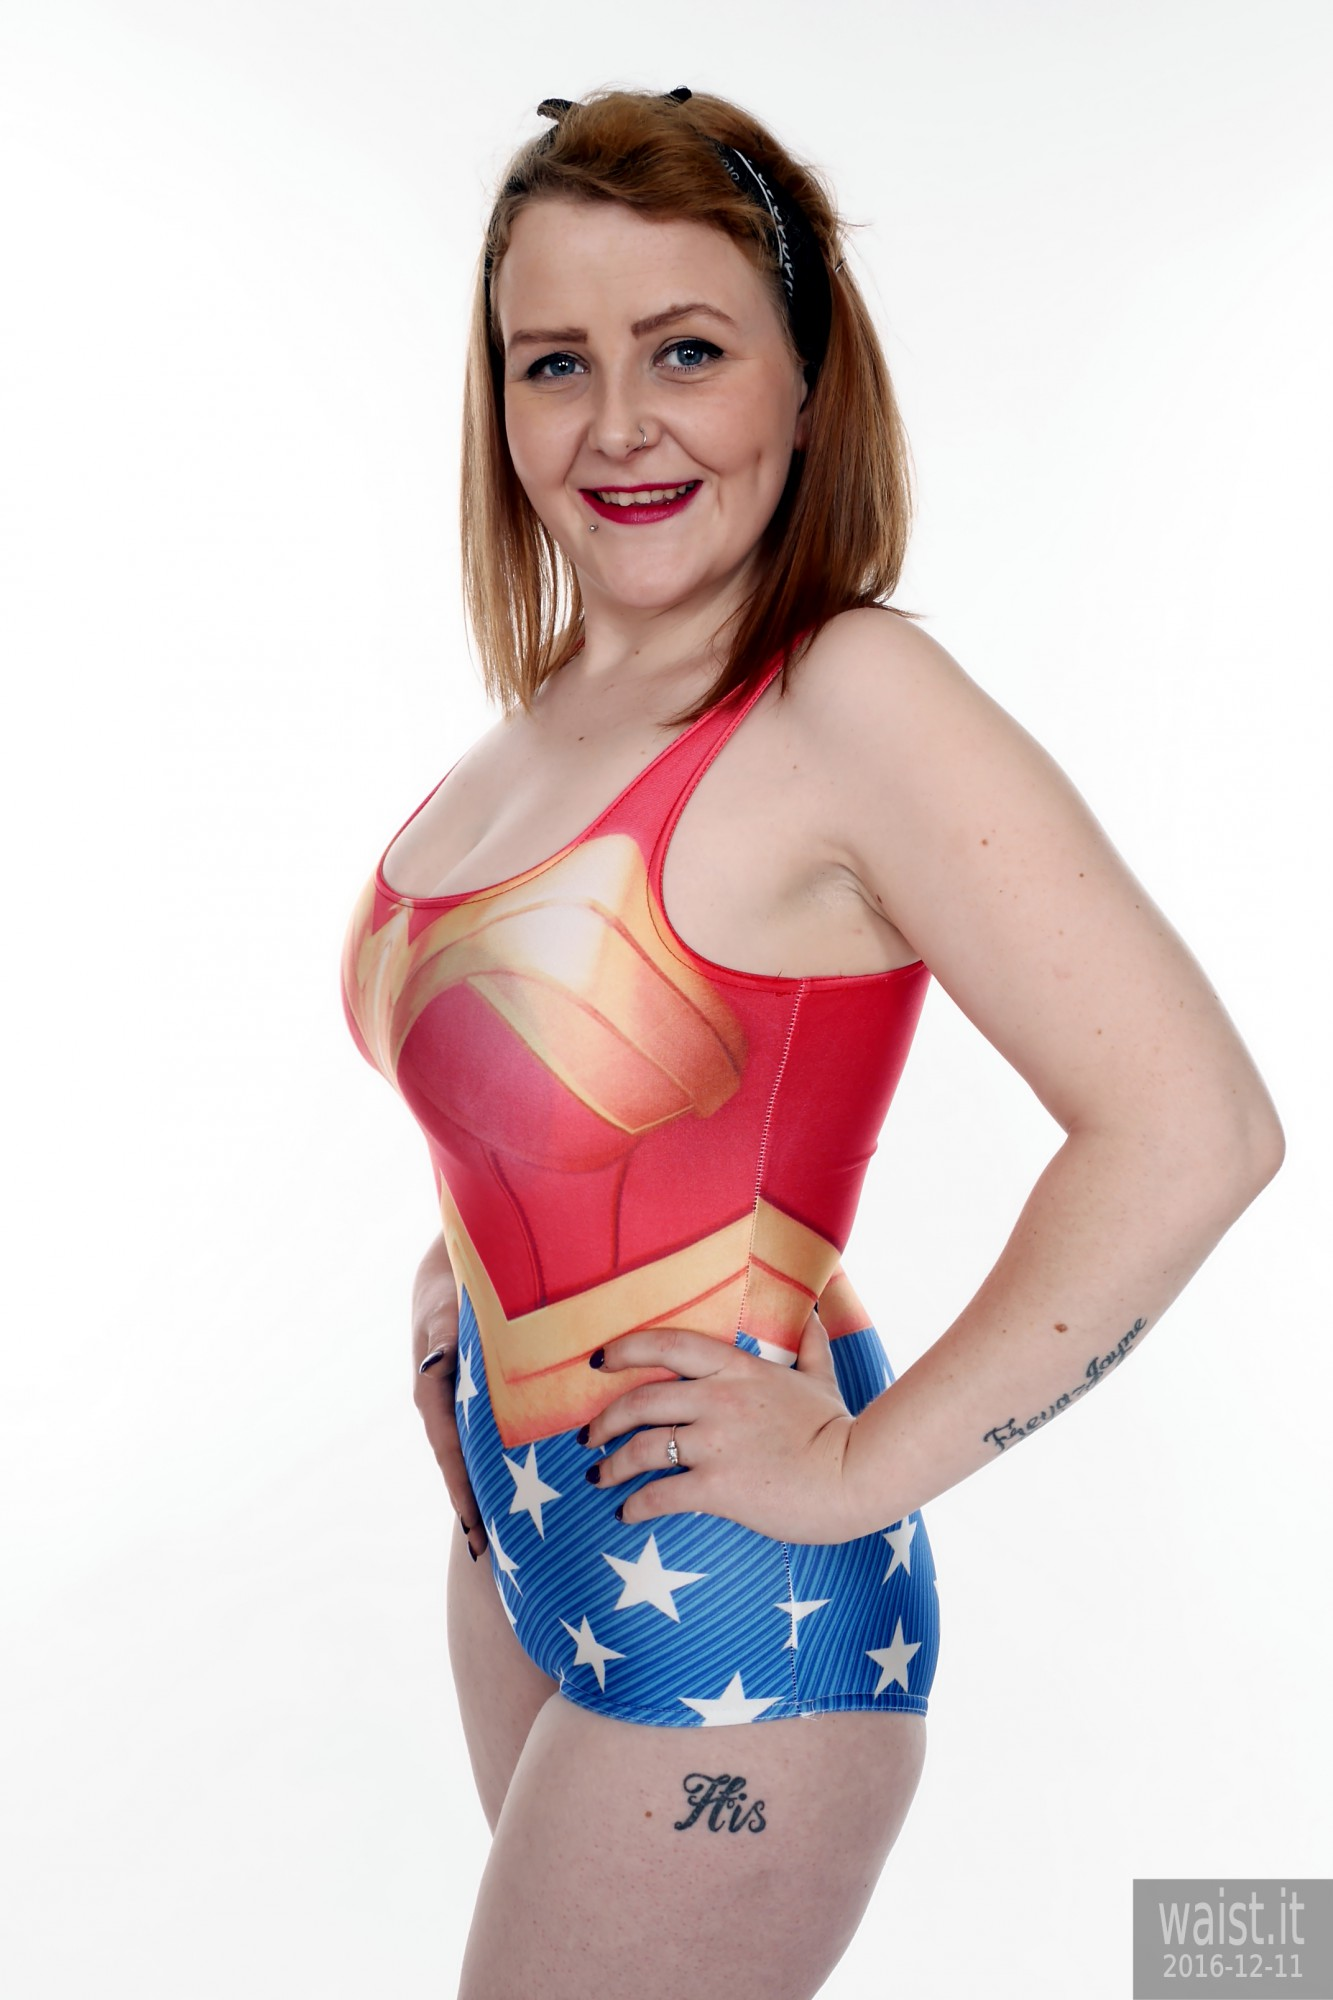 2019-12-11 Char in Wonderwoman swimsuit